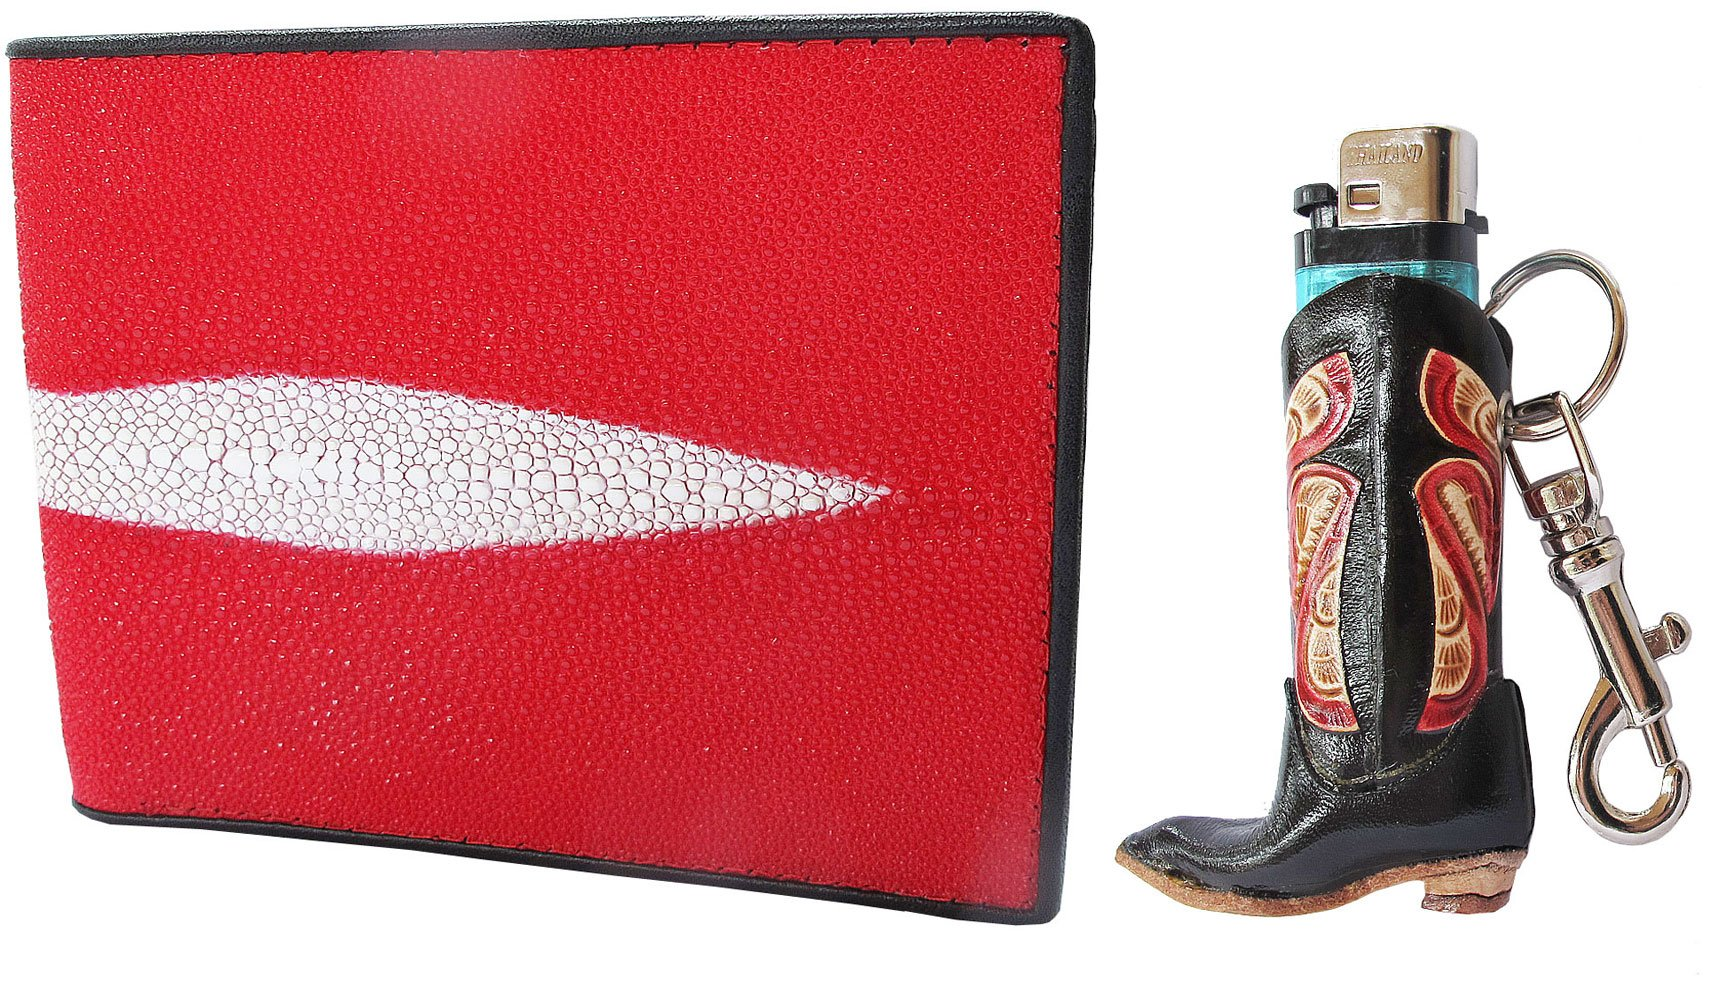 Danai Presents.HOT RED GENEUINE AND COOL STING RAY BI FOLD WALLET US SIZE COME ALONG WITH LIGHTER CASE (BOOT)